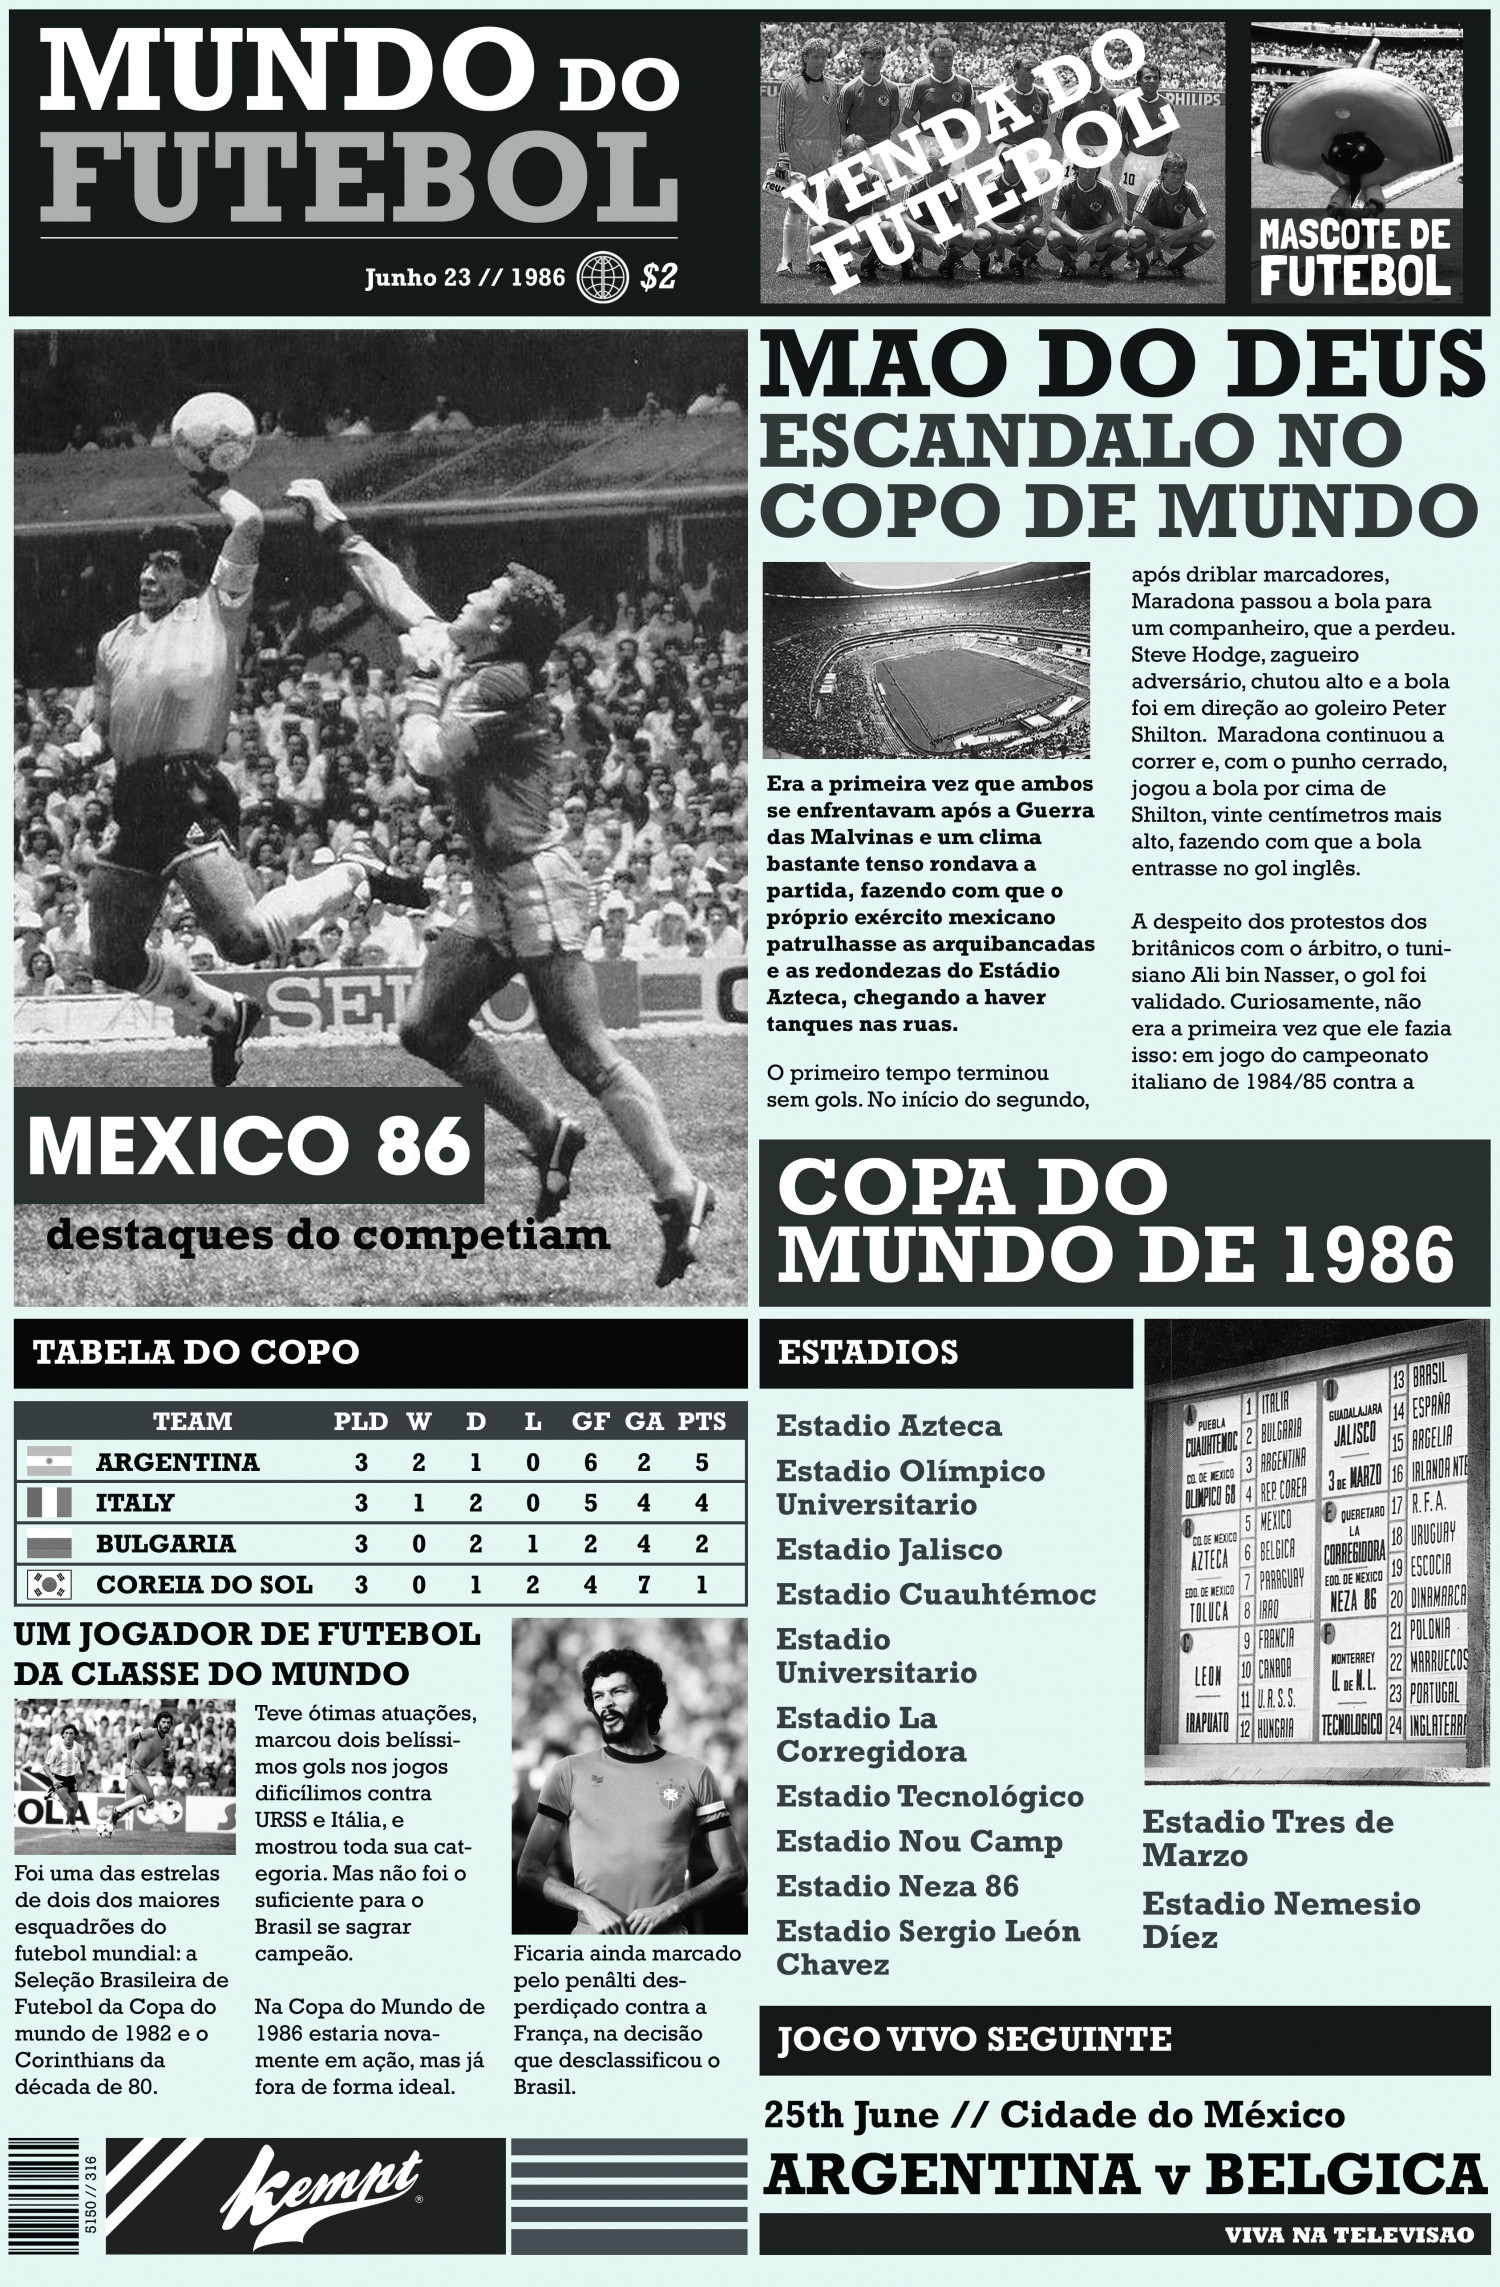 Mexico 86 Newspaper Infographic